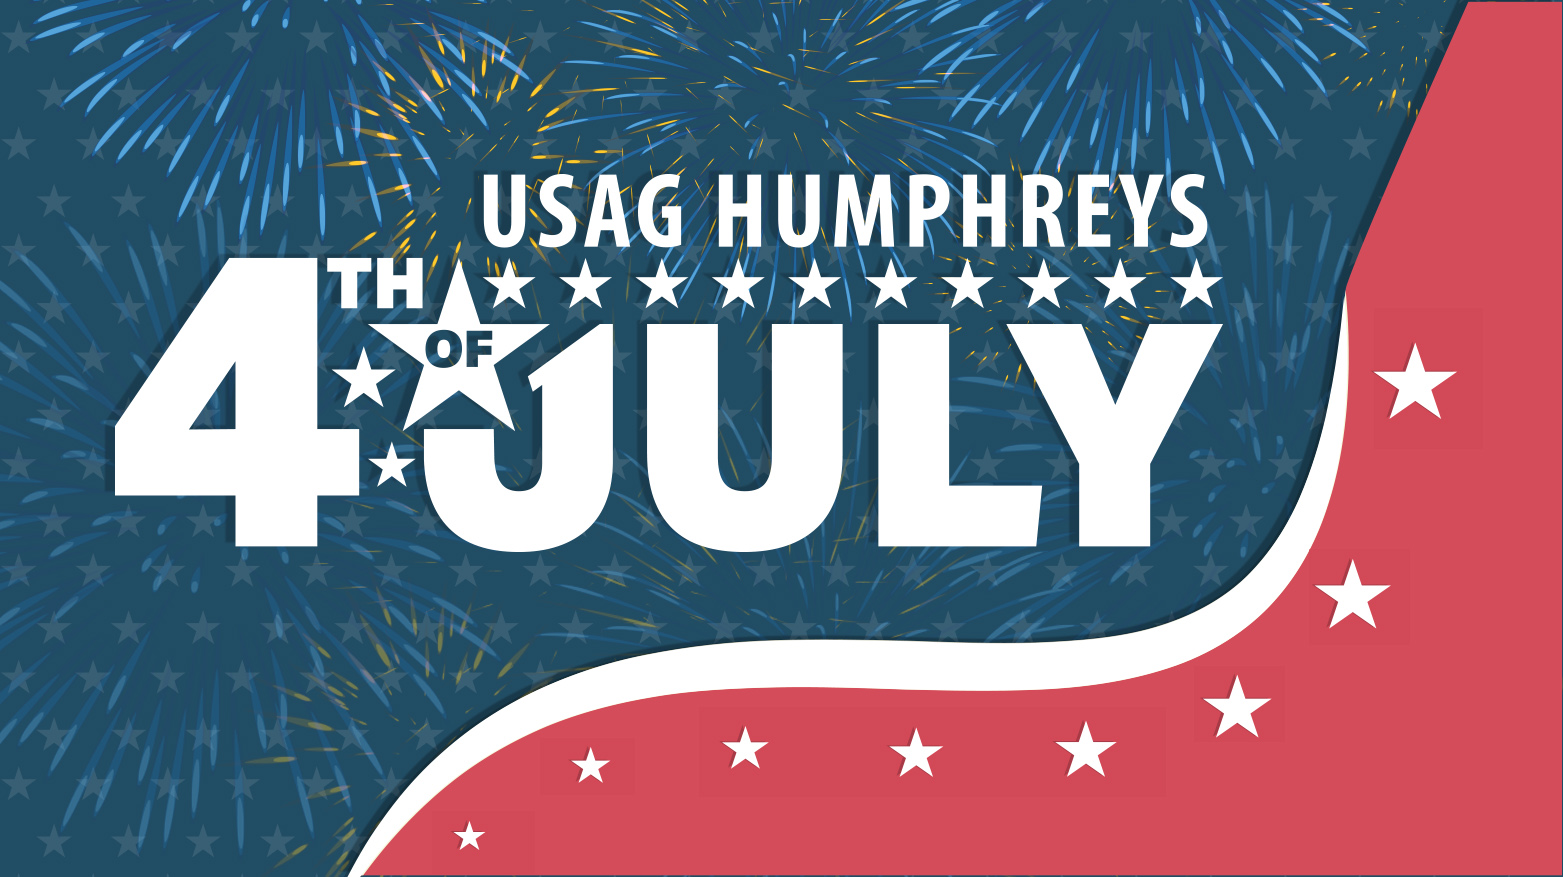 USAG Humphreys 4th of July